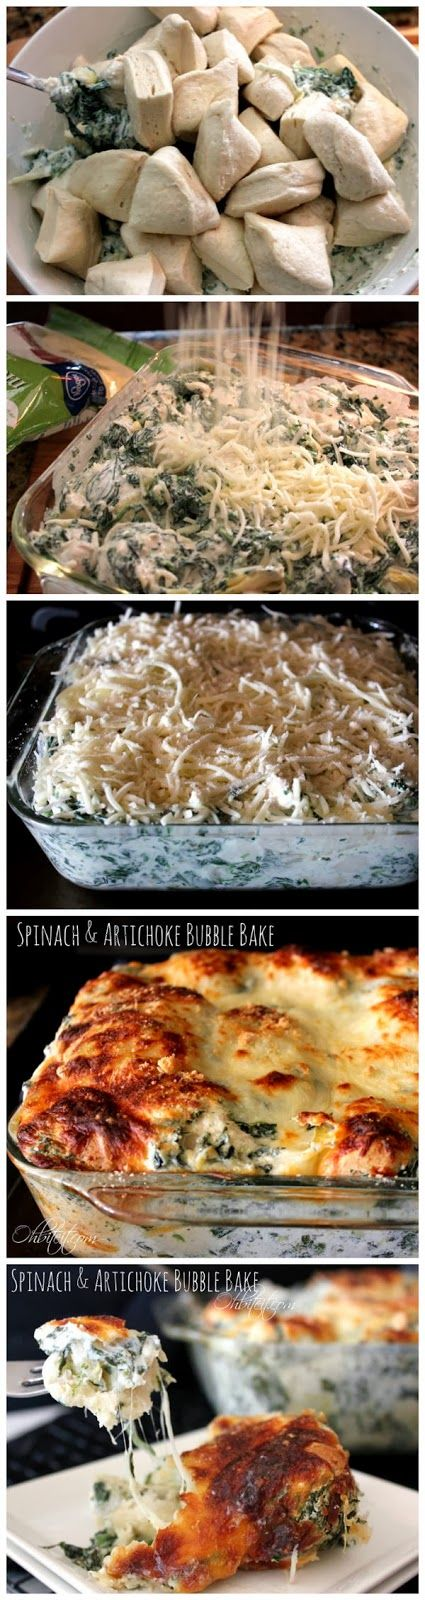 Spinach & Artichoke Bubble Bake -  Pillsbury Grands Flaky Layers Biscuits, Frozen Spinach, Shredded Mozzarella, can of Artichoke Hearts, Cream Cheese ,Grated Parmesan, Sour Cream, Cayenne Pepper..optional. See more at: http://www.redstarrecipe.com/2013/10/spinach-artichoke-bubble-bake.html#sthash.oxHt4WyD.dpuf